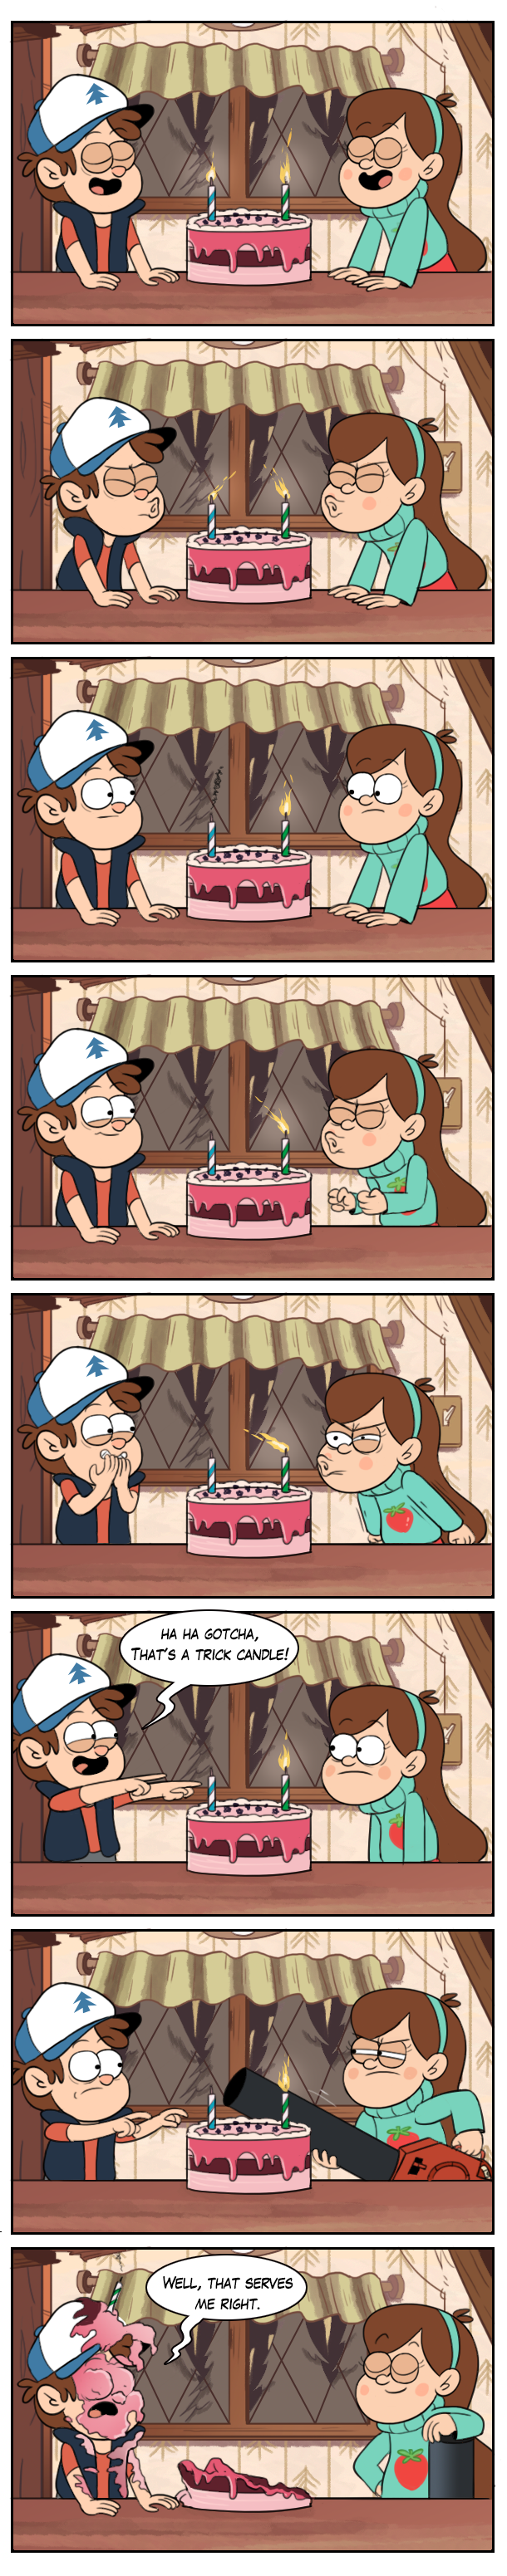 Birthday cake Gravity Falls Know Your Meme